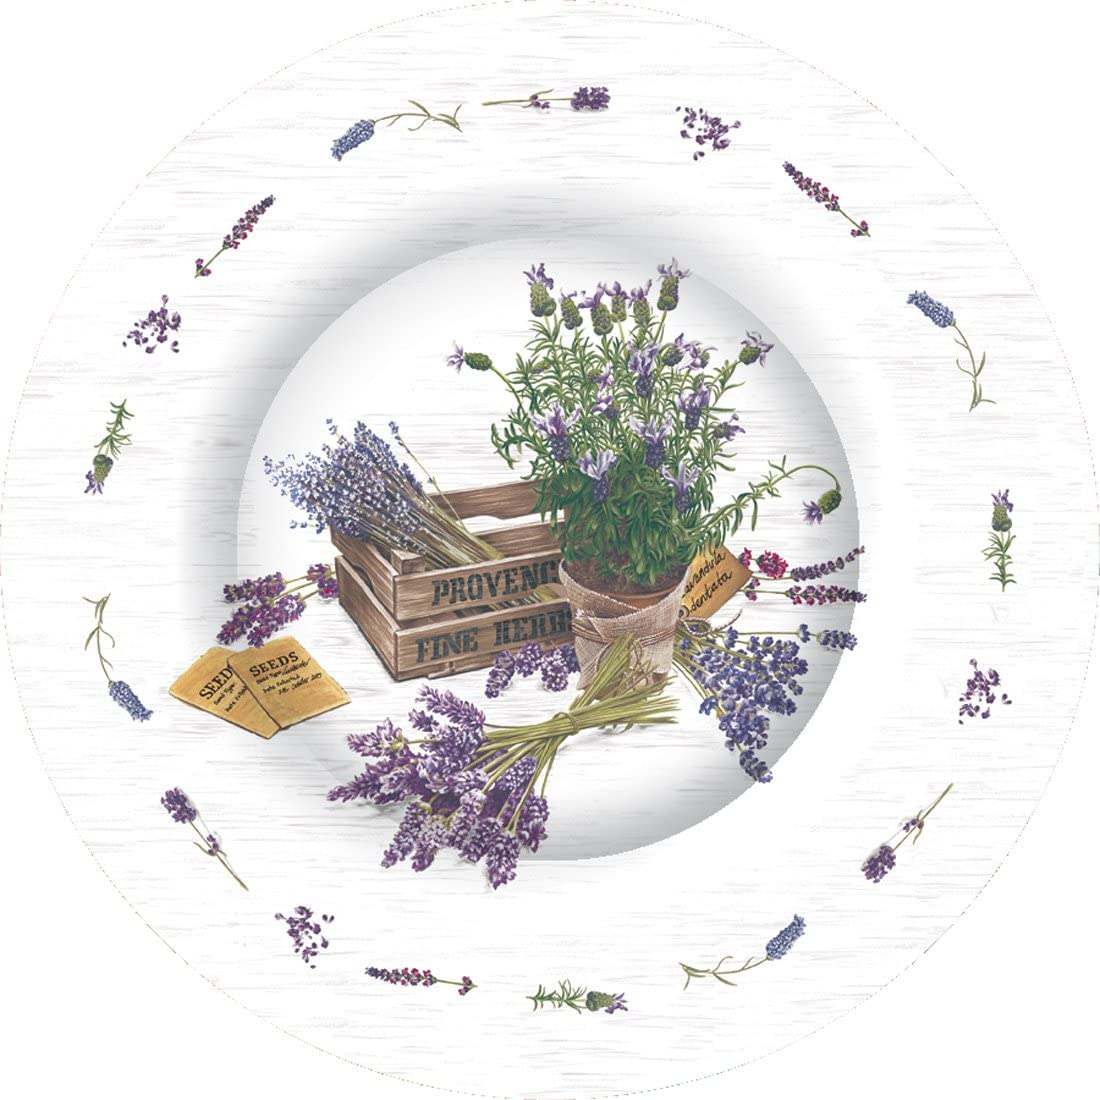 Boston International Round Paper Dinner Plates, 8-Count, 10.5-Inches in Diameter, The Flavor of Provence